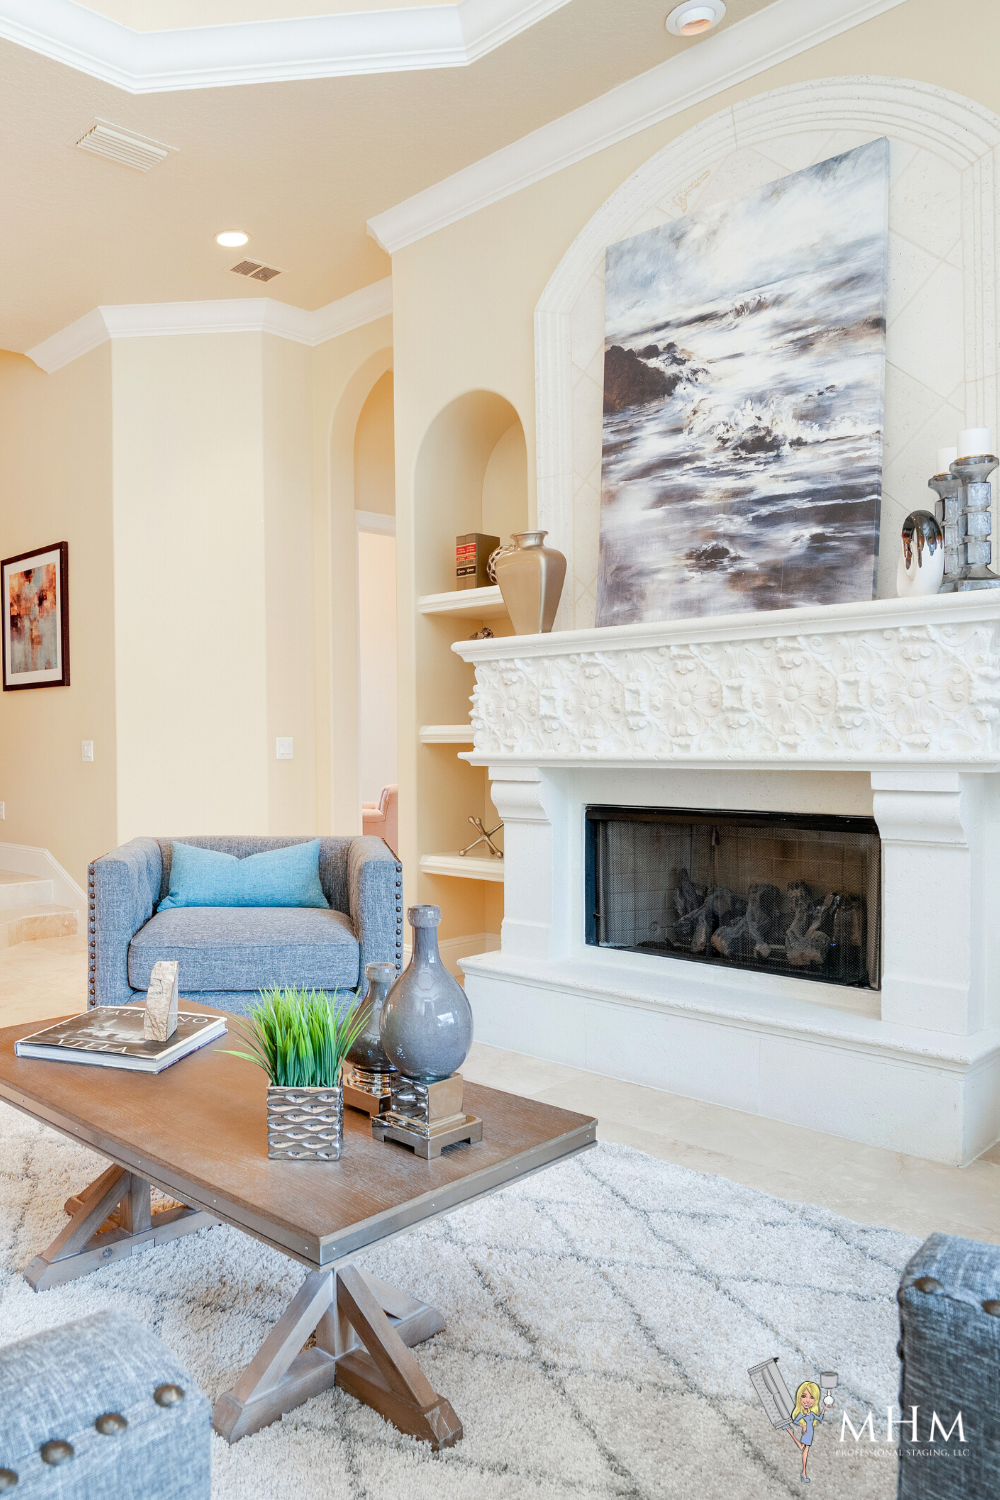 Mhm Professional Staging Orlando Home Staging Company Home Staging Home Staging Companies Home